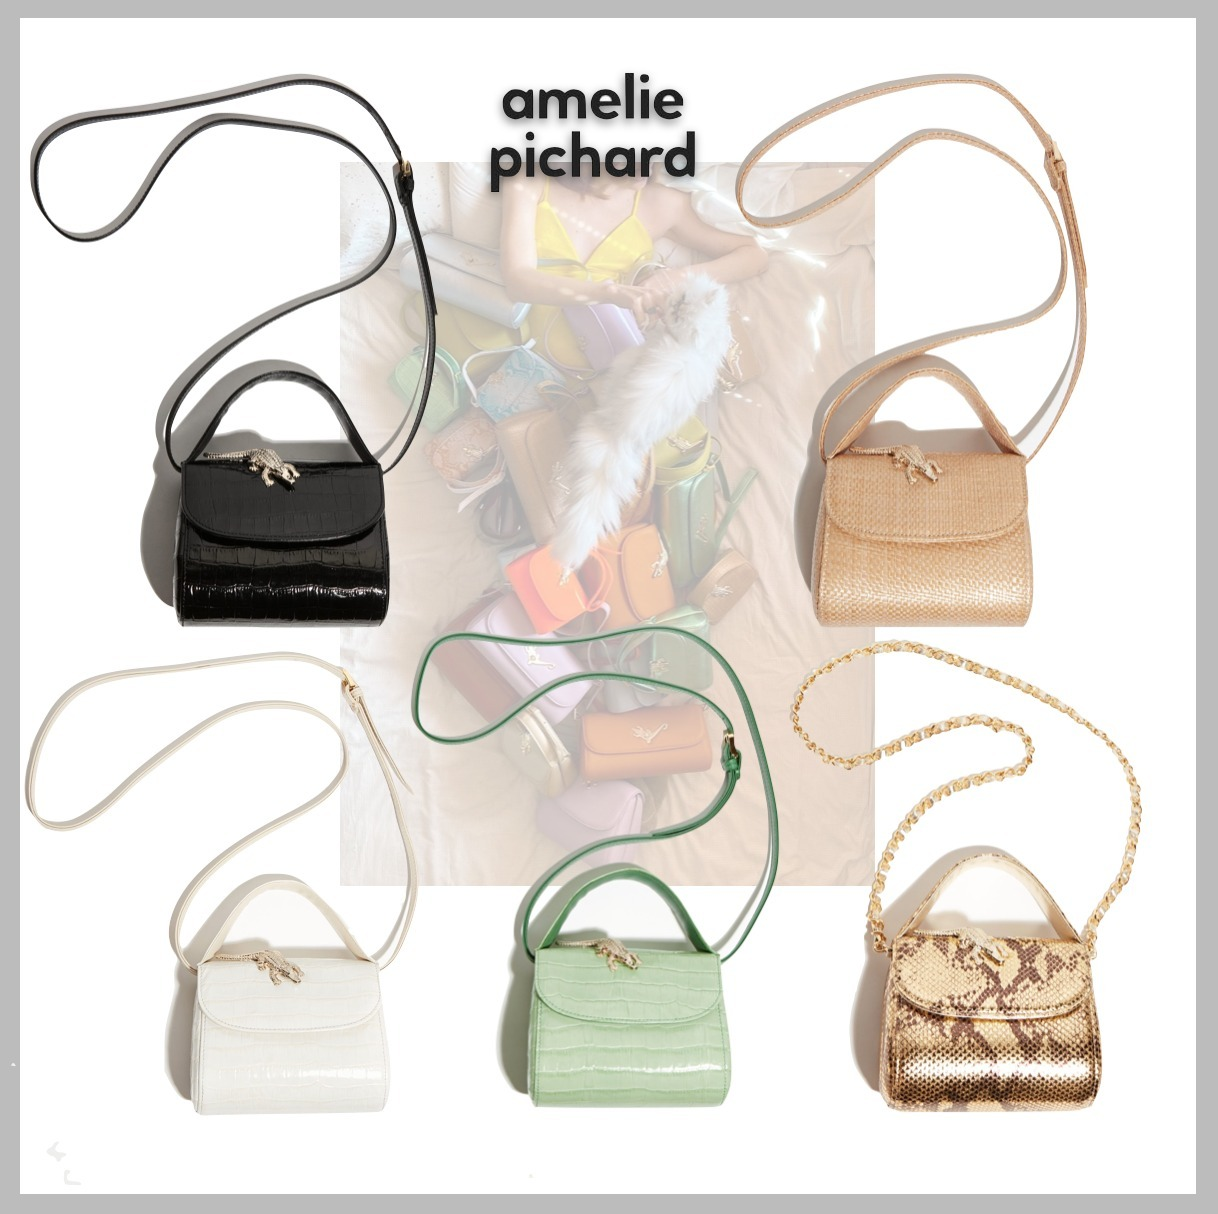 shop amelie pichard bags